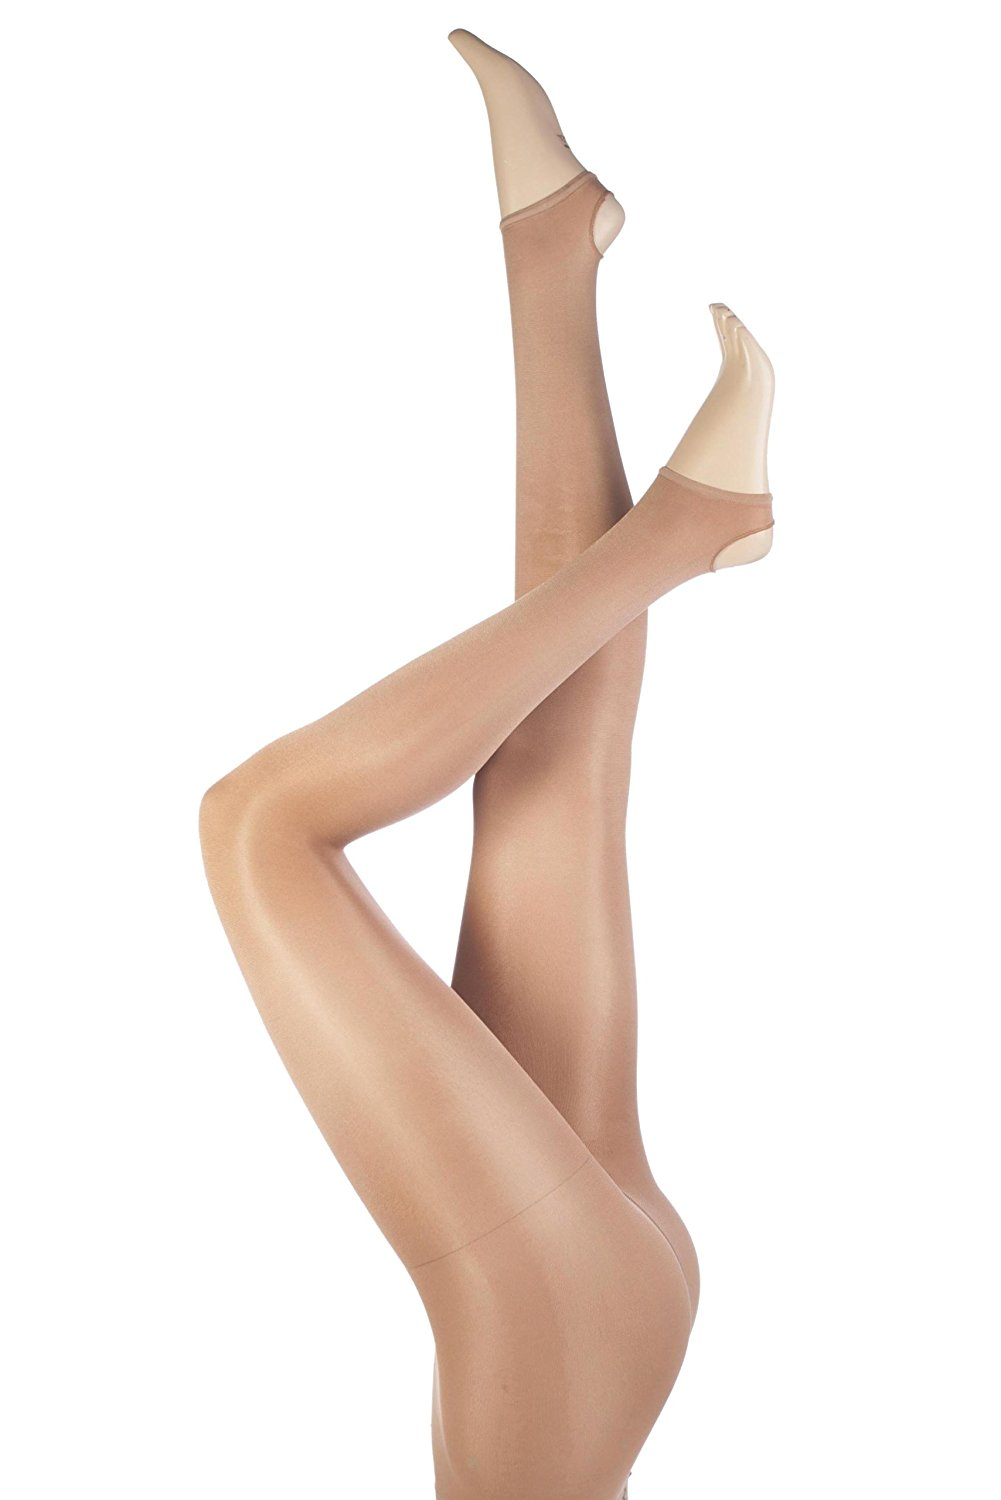 d0c0e9f9332 Get Quotations · Silky Women s 1 Pair Dance Shimmer Stirrup Tights